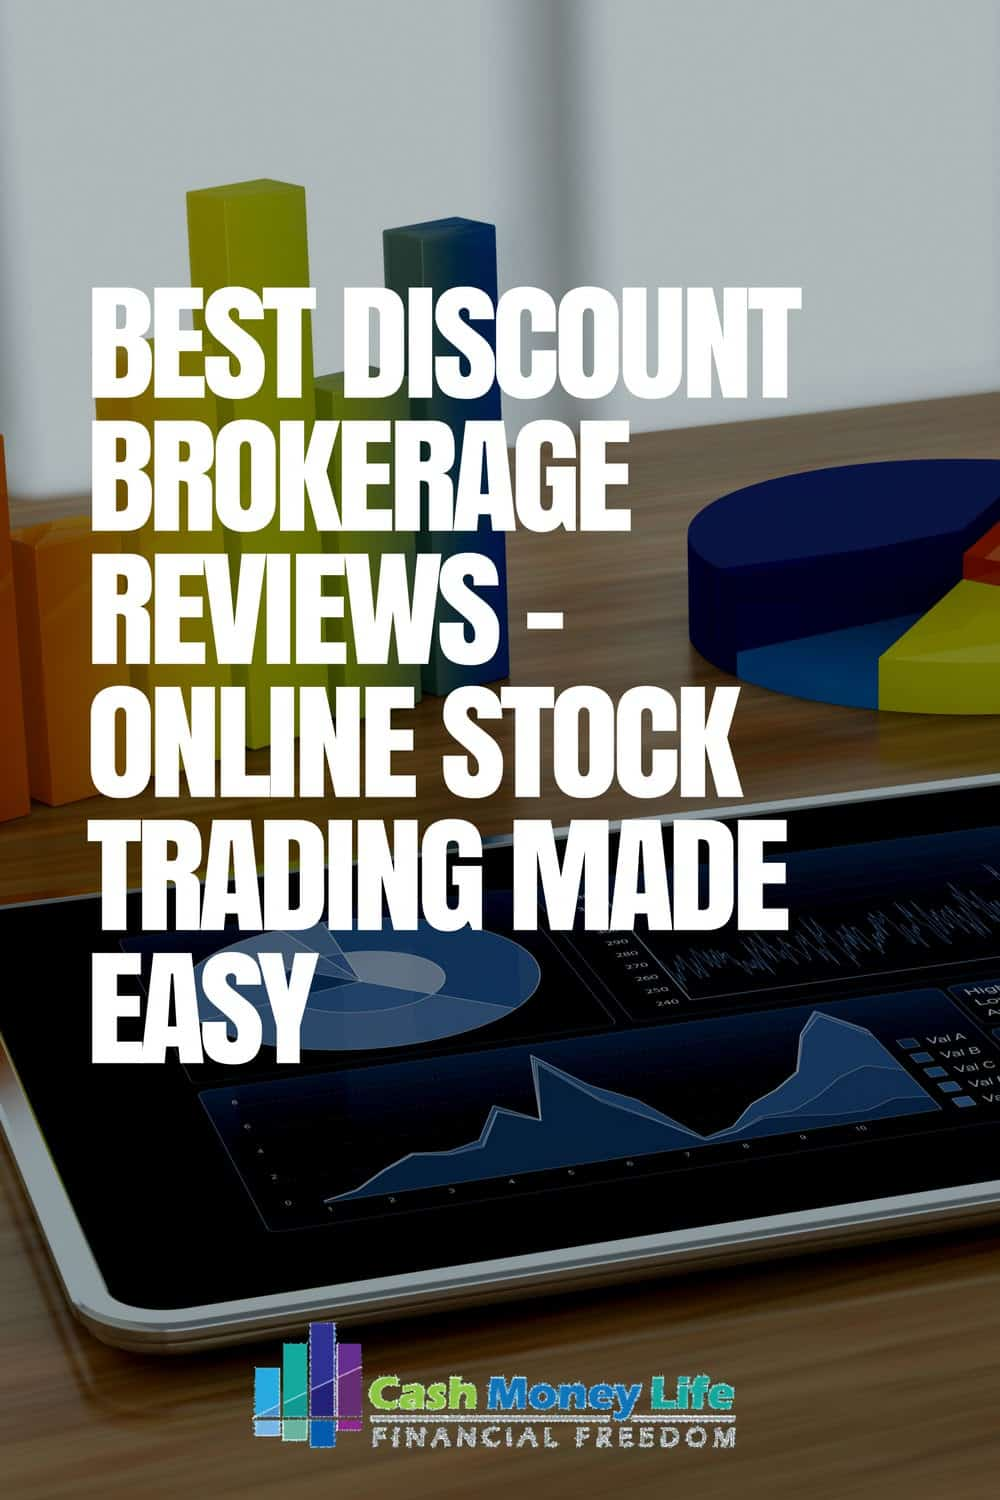 Best Online Stock Brokers For All Investors in 2019 | Online